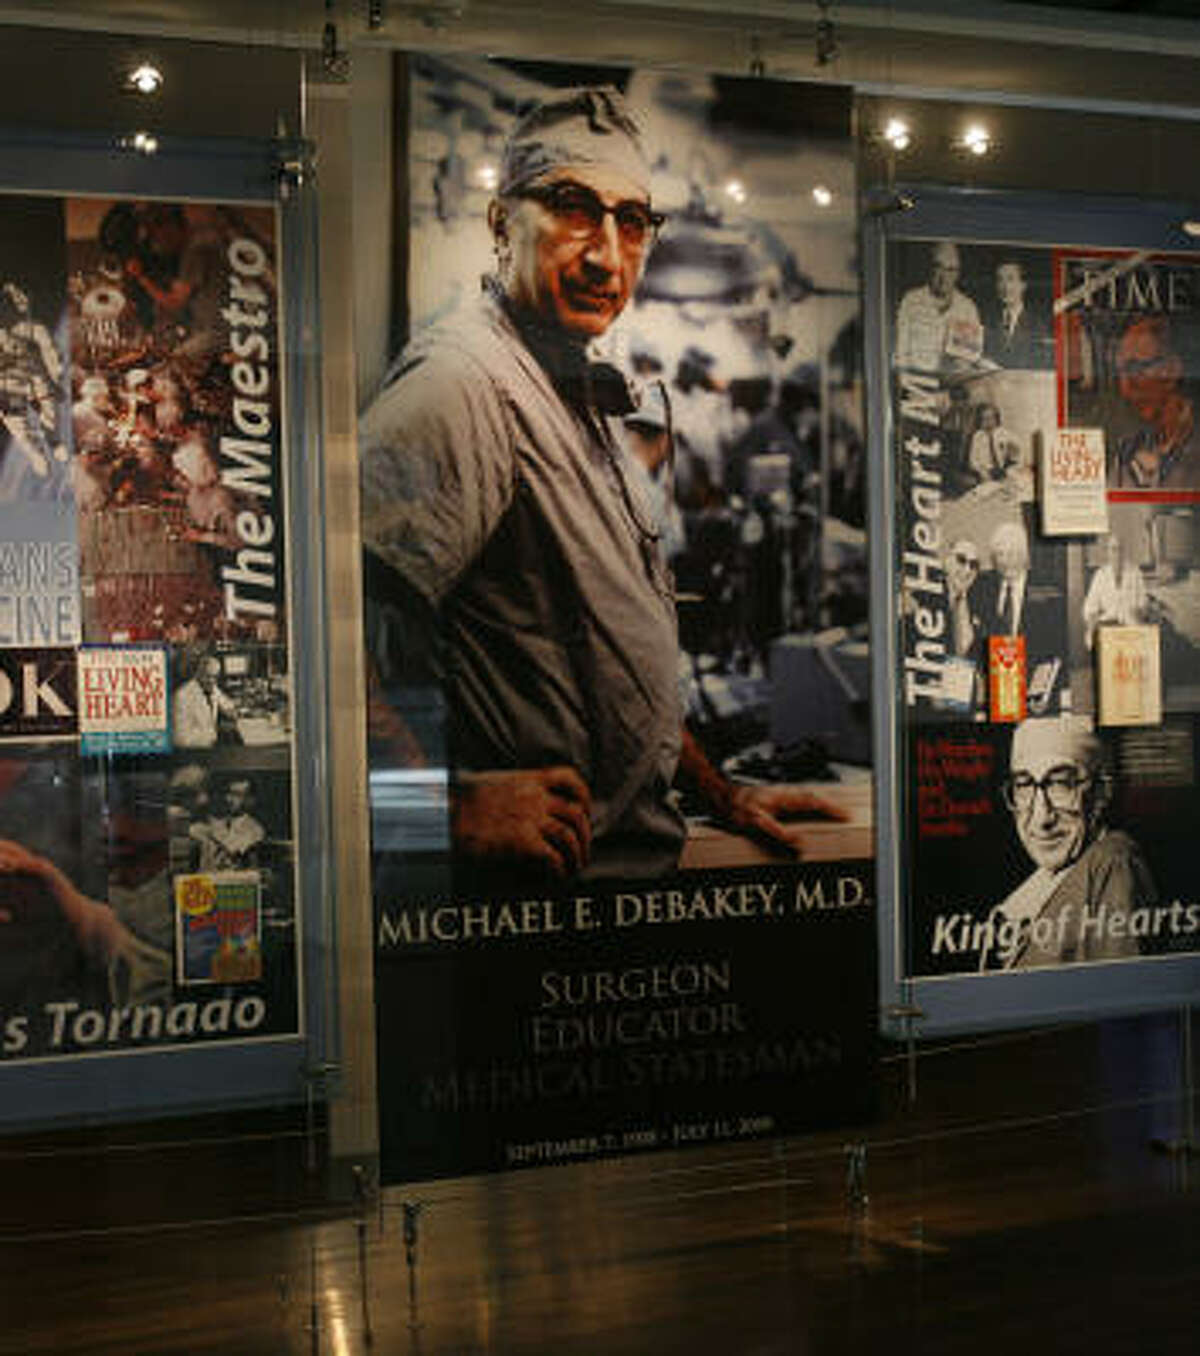 A portrait of DeBakey graces the entrance of the Michael E. DeBakey Library and Museum. Among those attending the Friday opening was one-time rival Dr. Denton Cooley.